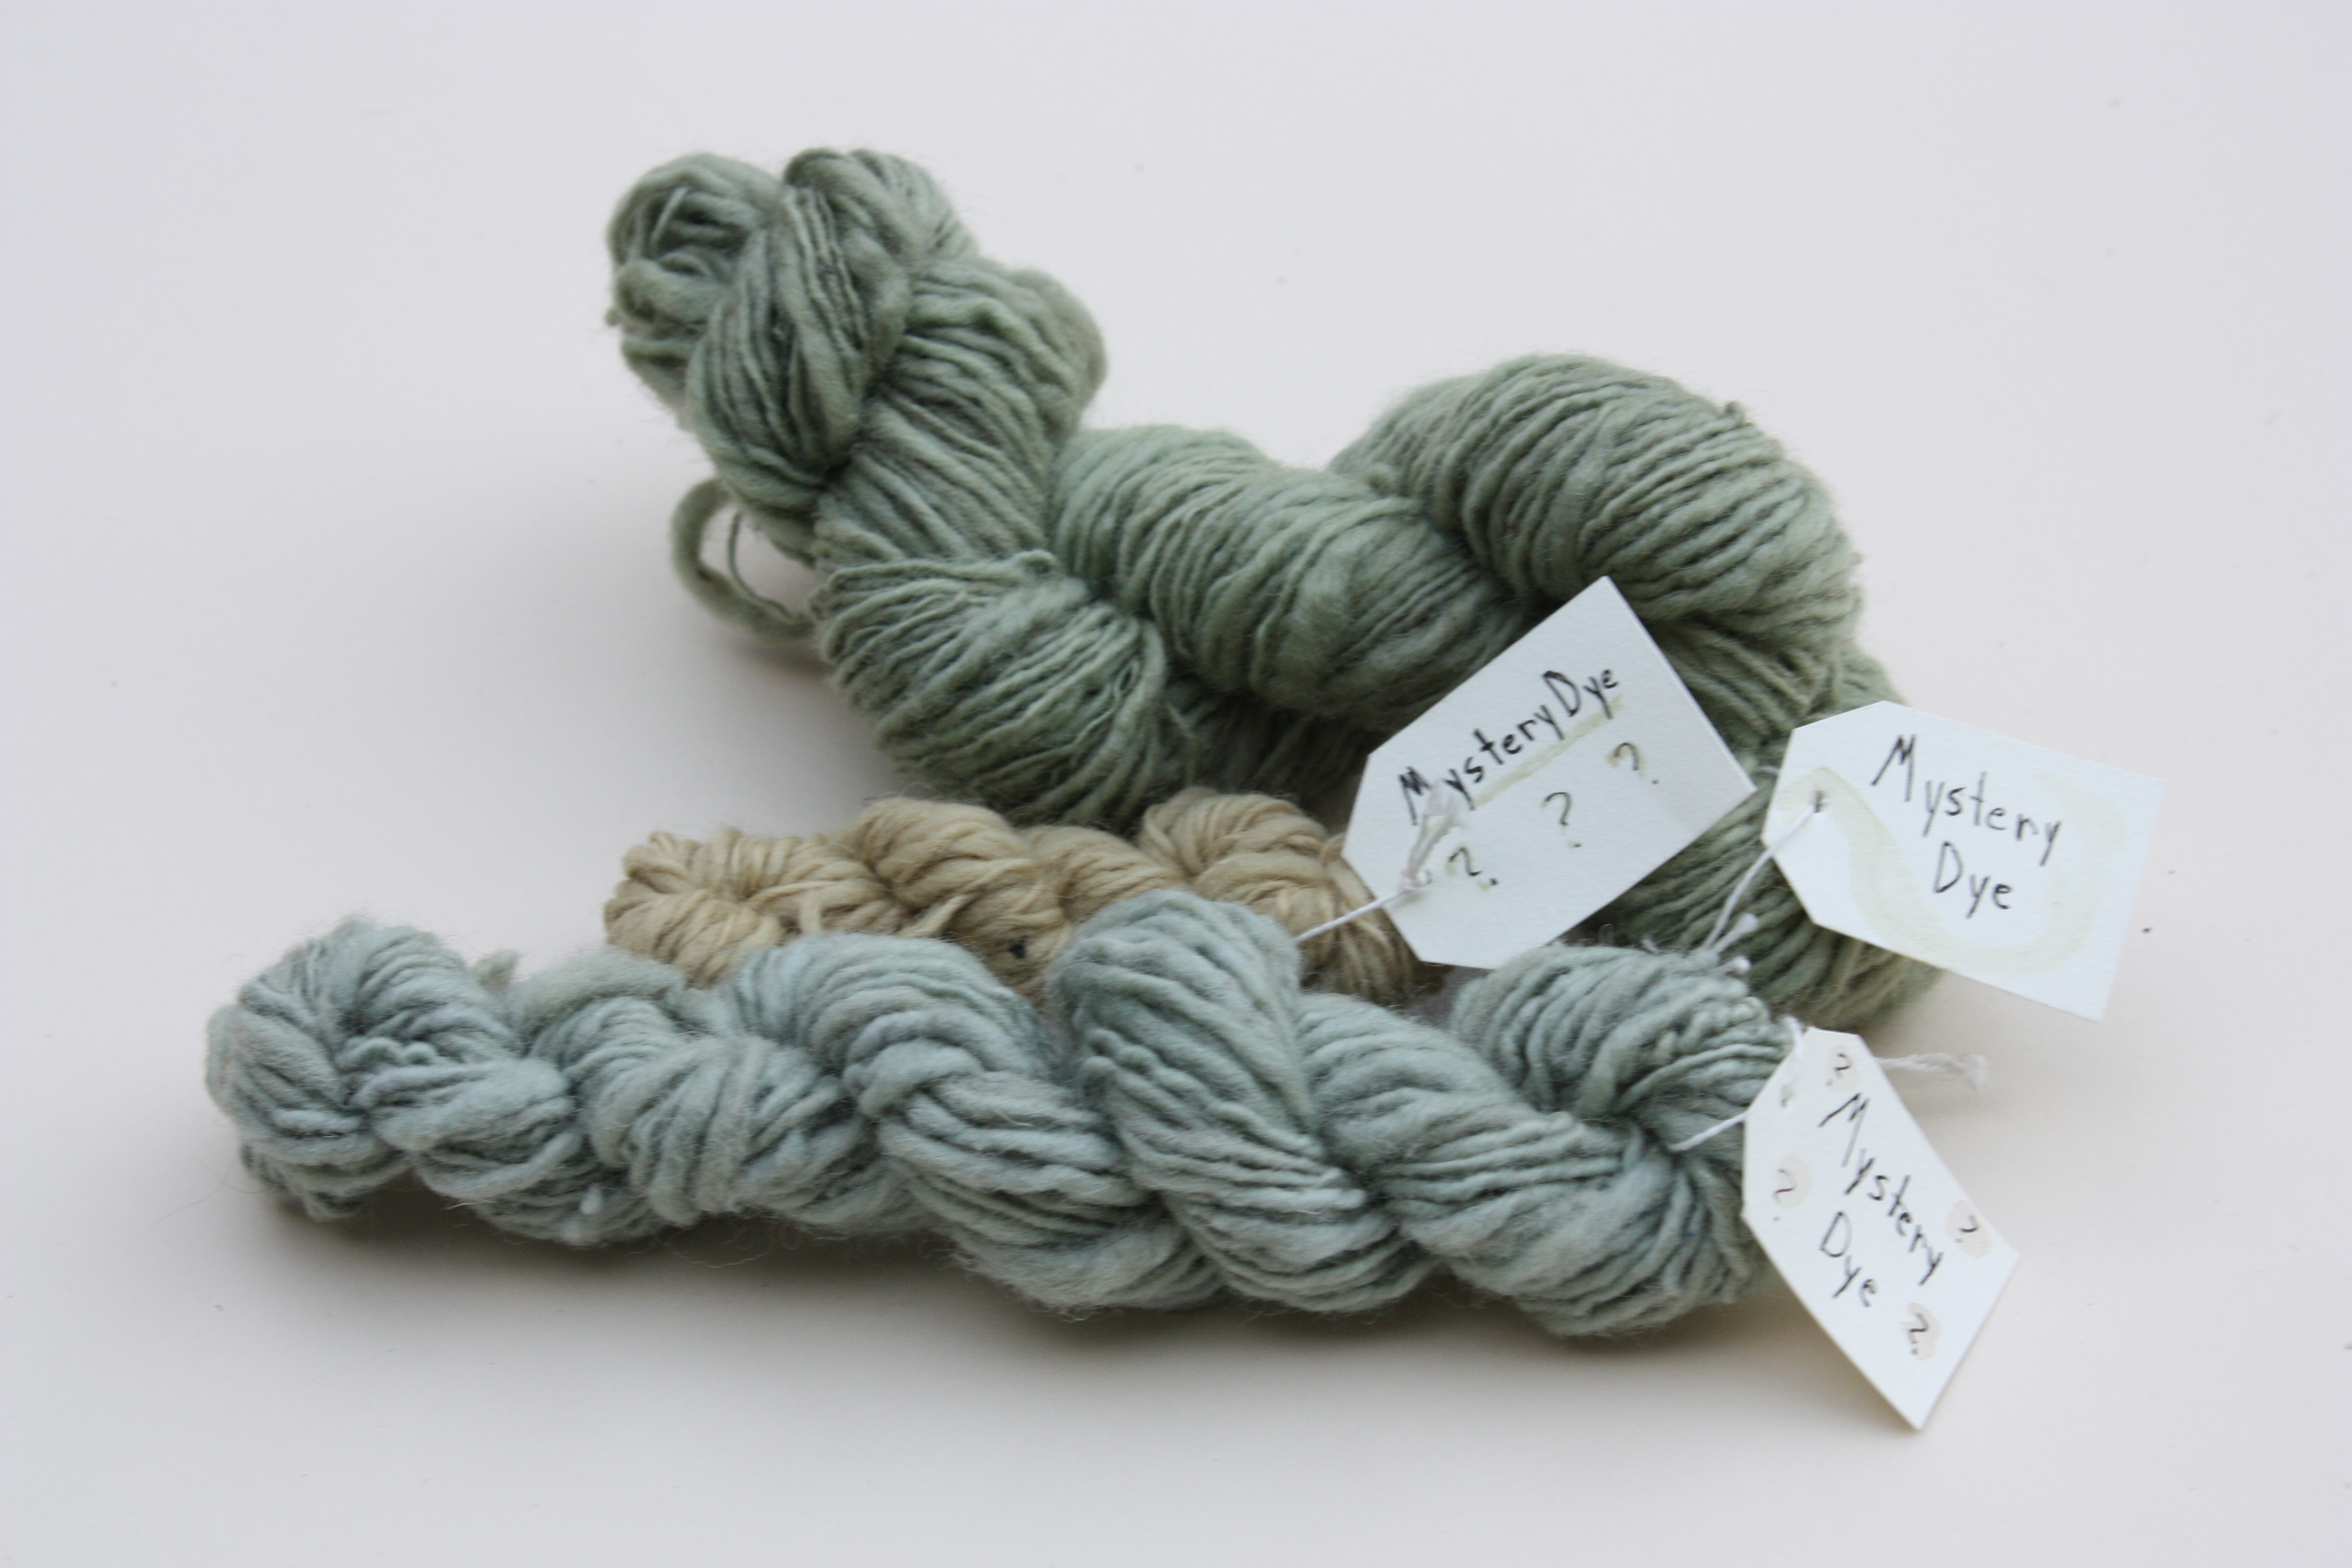 5 Tips For Getting Started With Natural Dyes